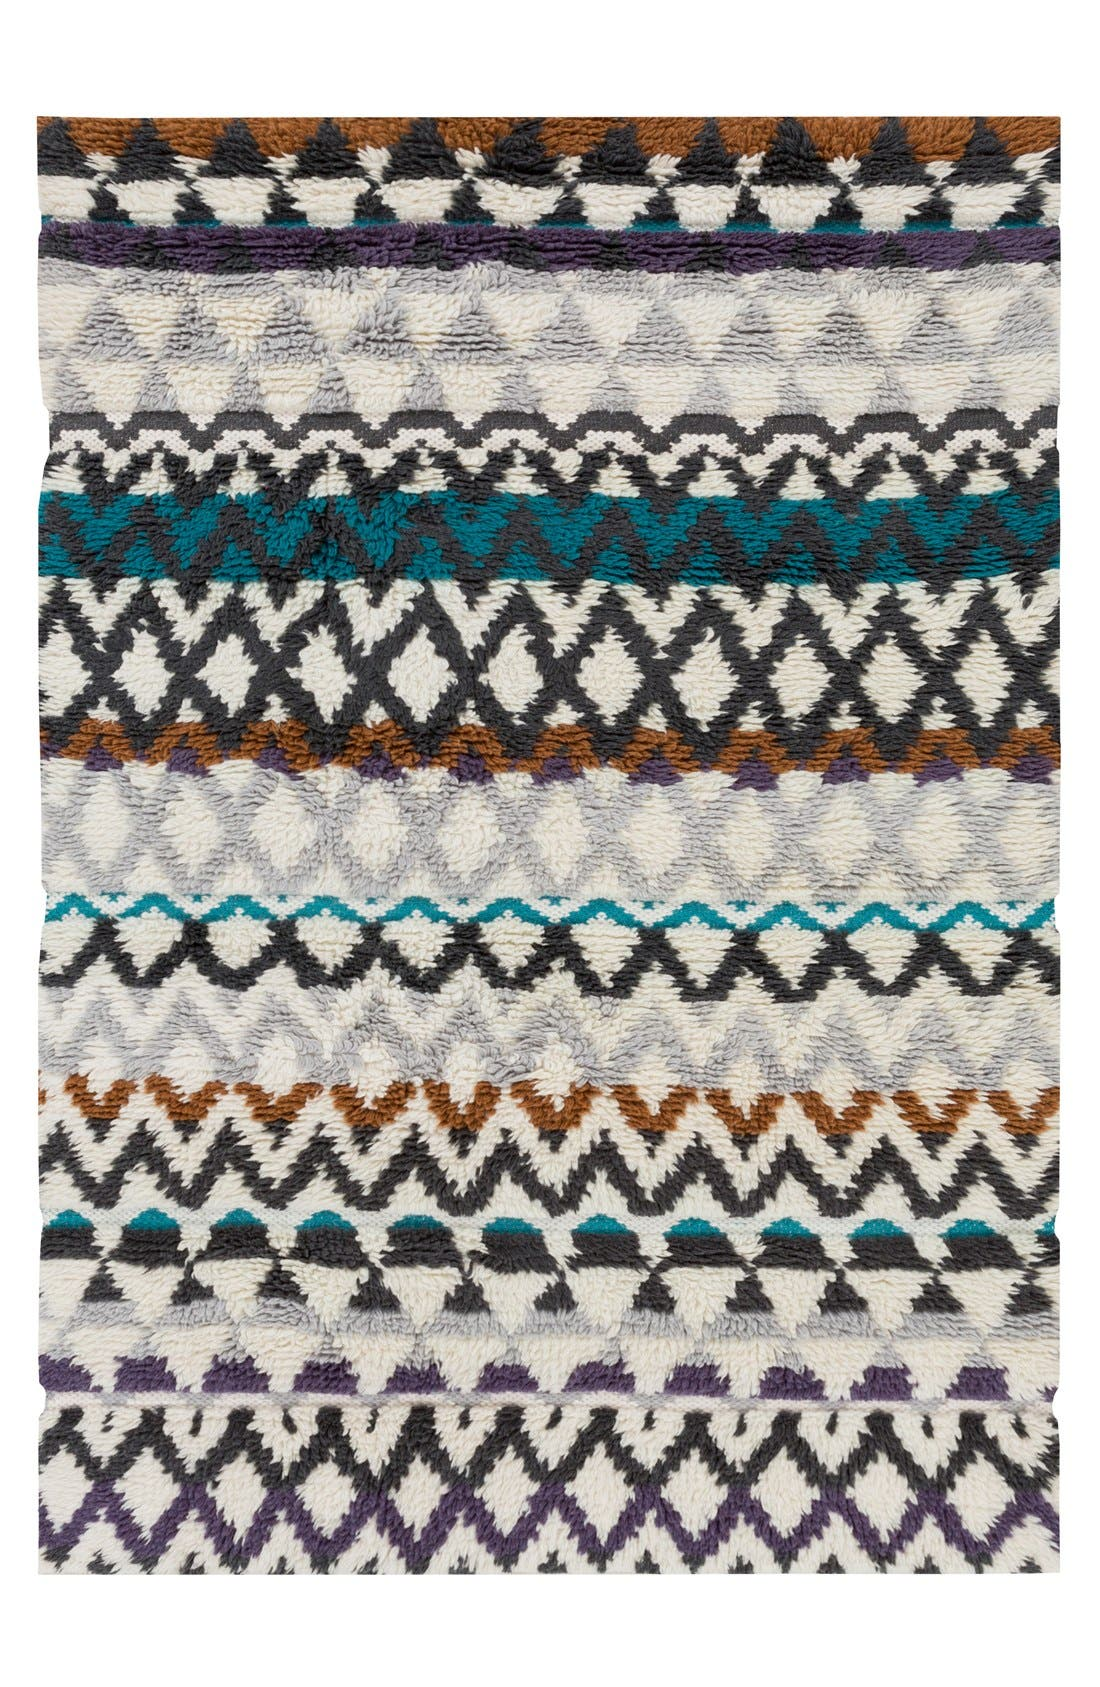 Alternate Image 1 Selected - Surya Home 'Atticus' Hand Woven Wool Rug